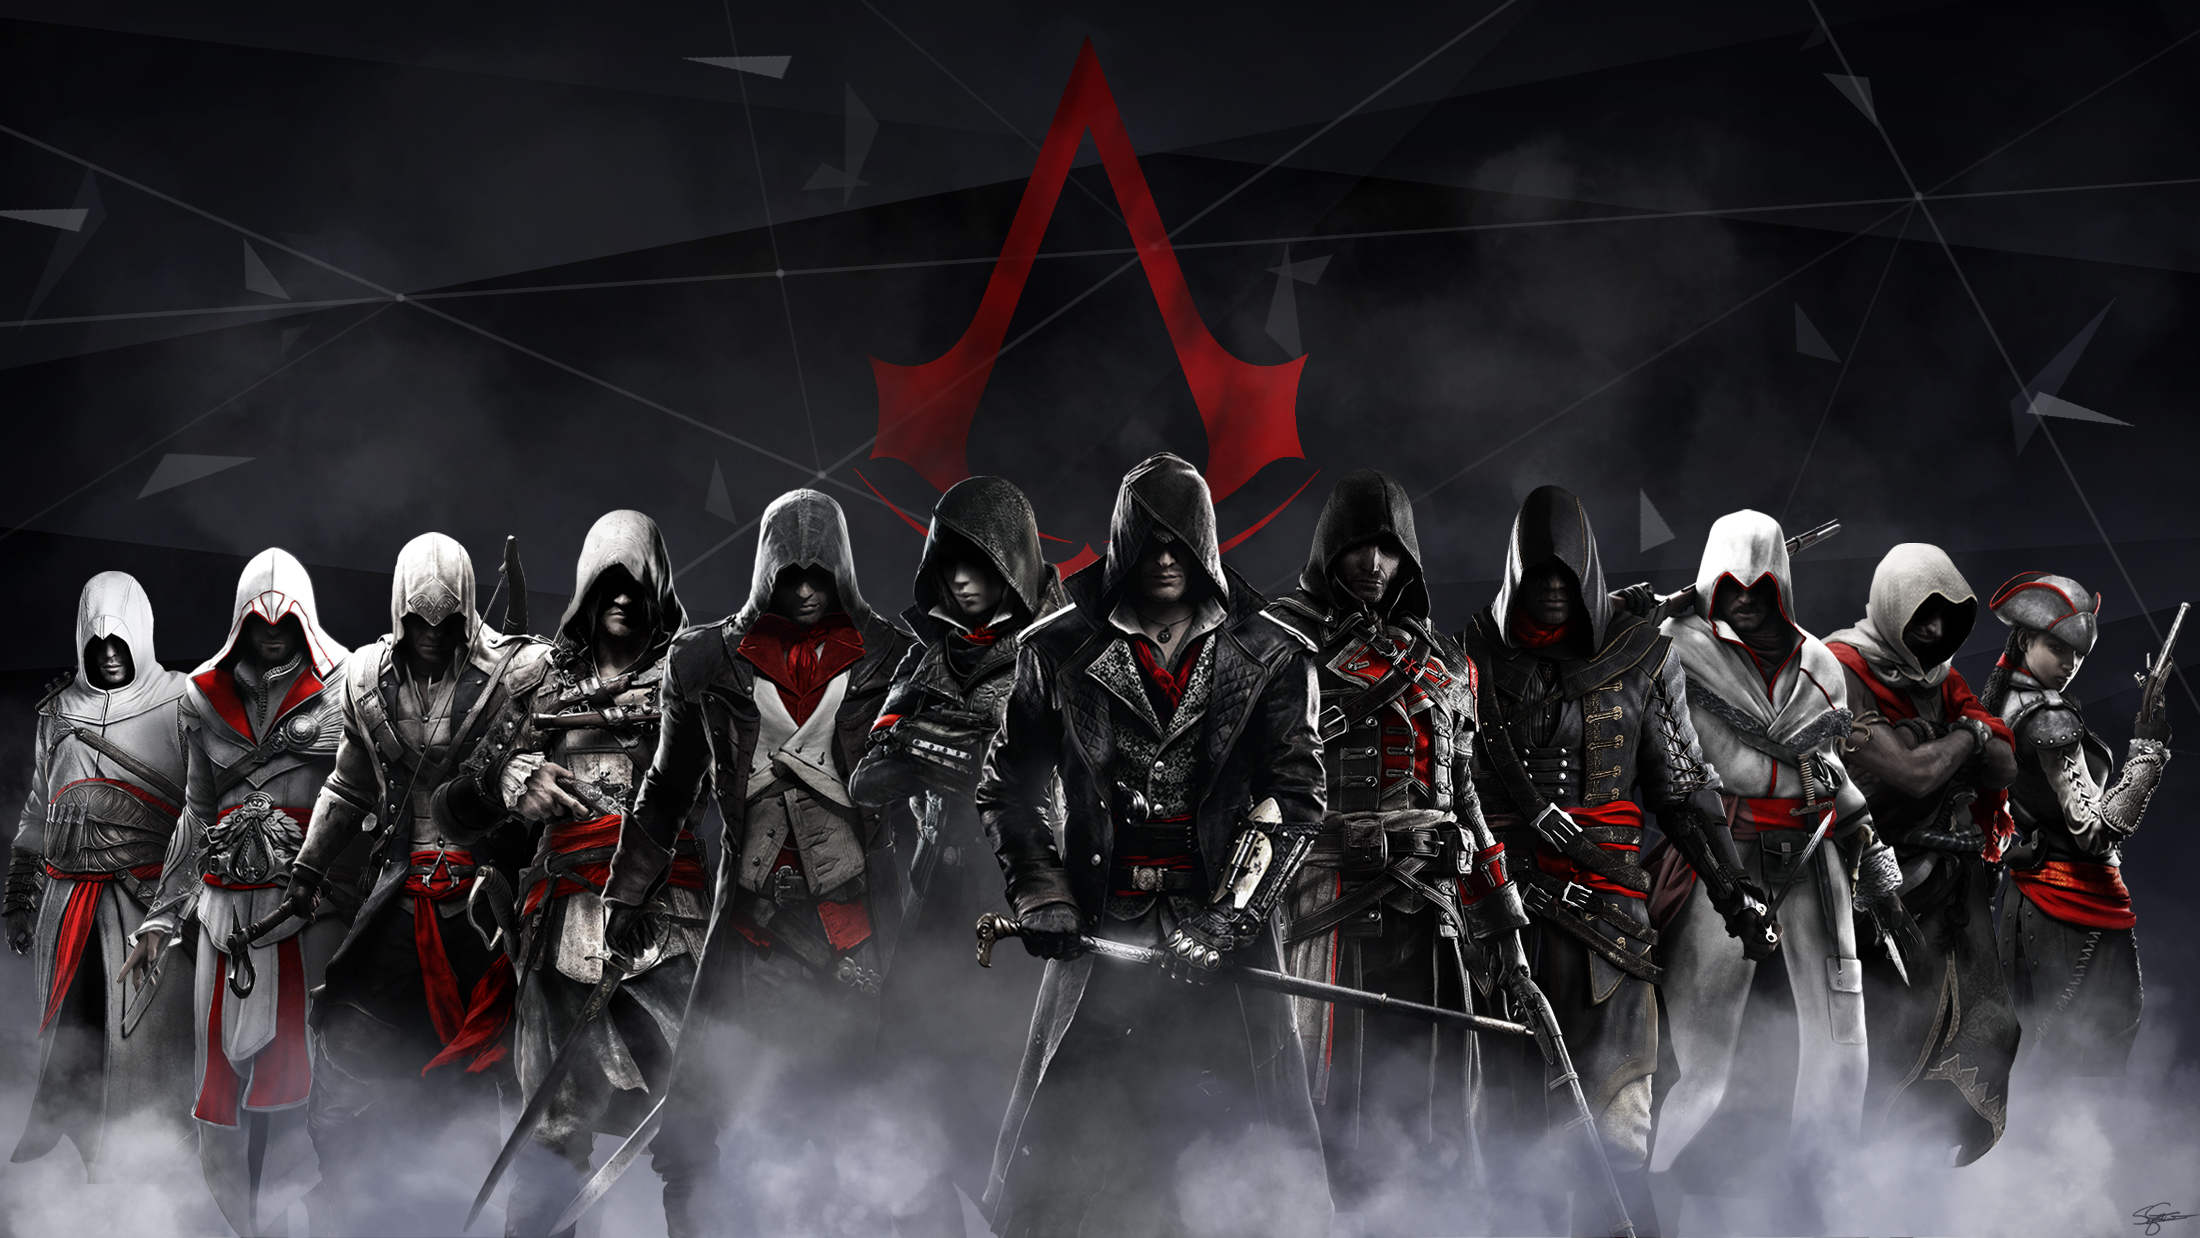 any updated wallpapers like this for aco? : assassinscreed